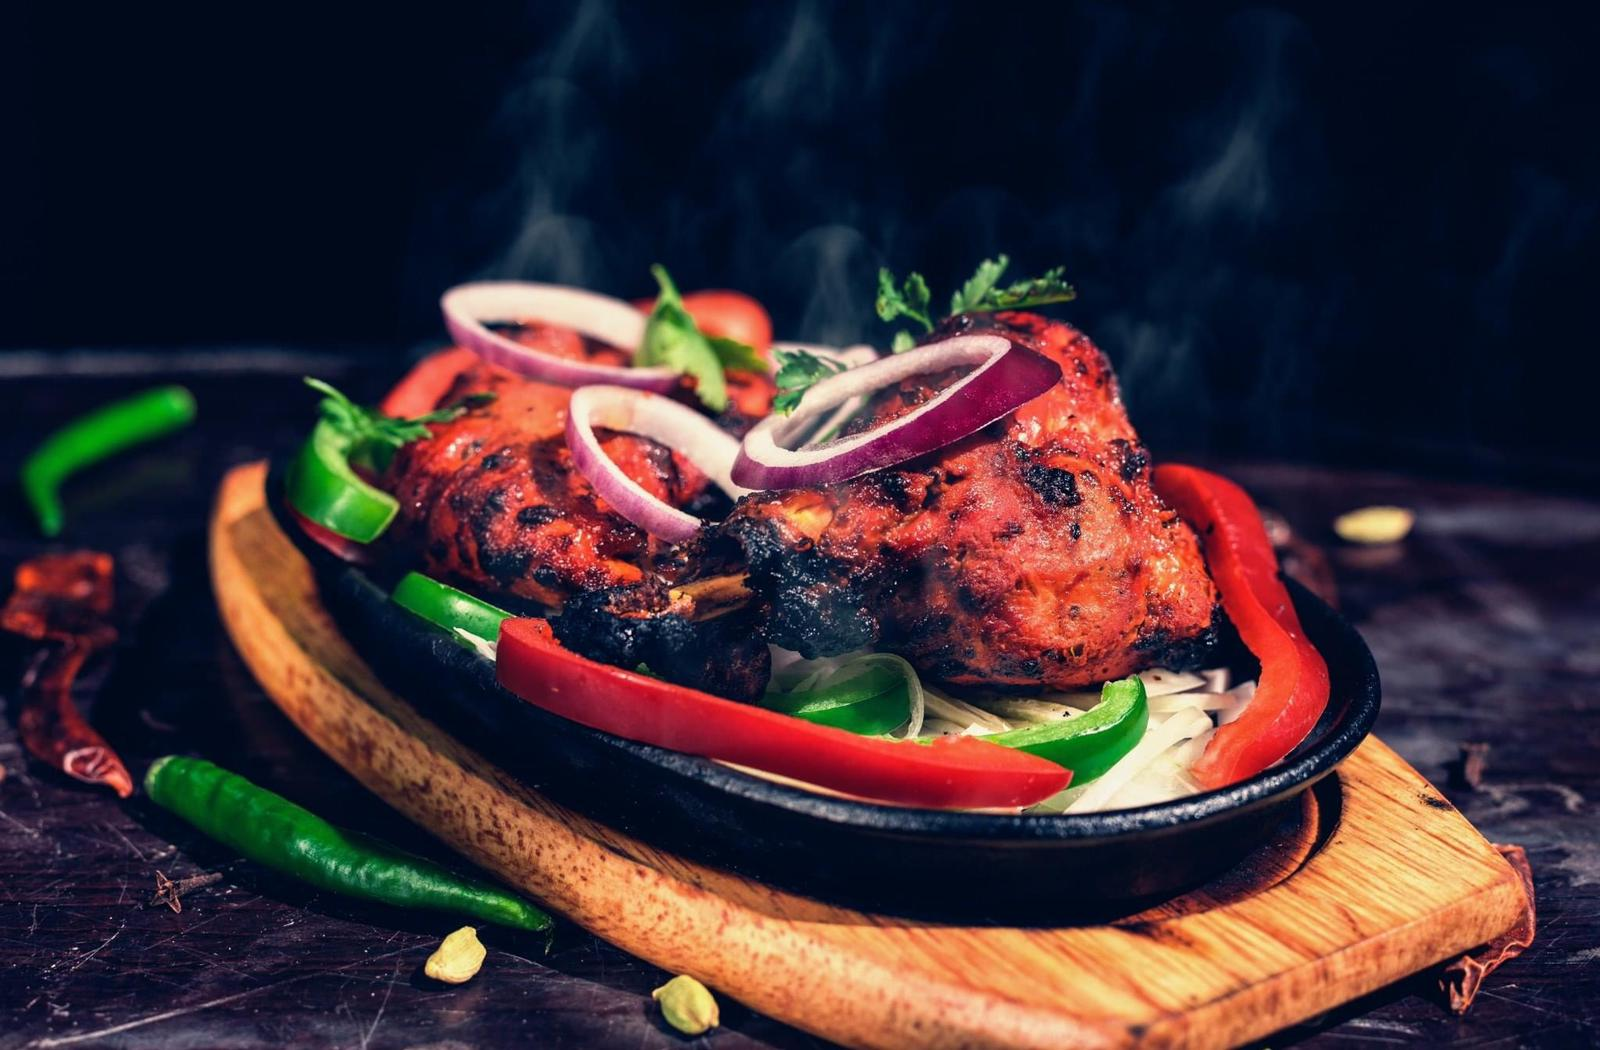 Tandoori Chicken - Half